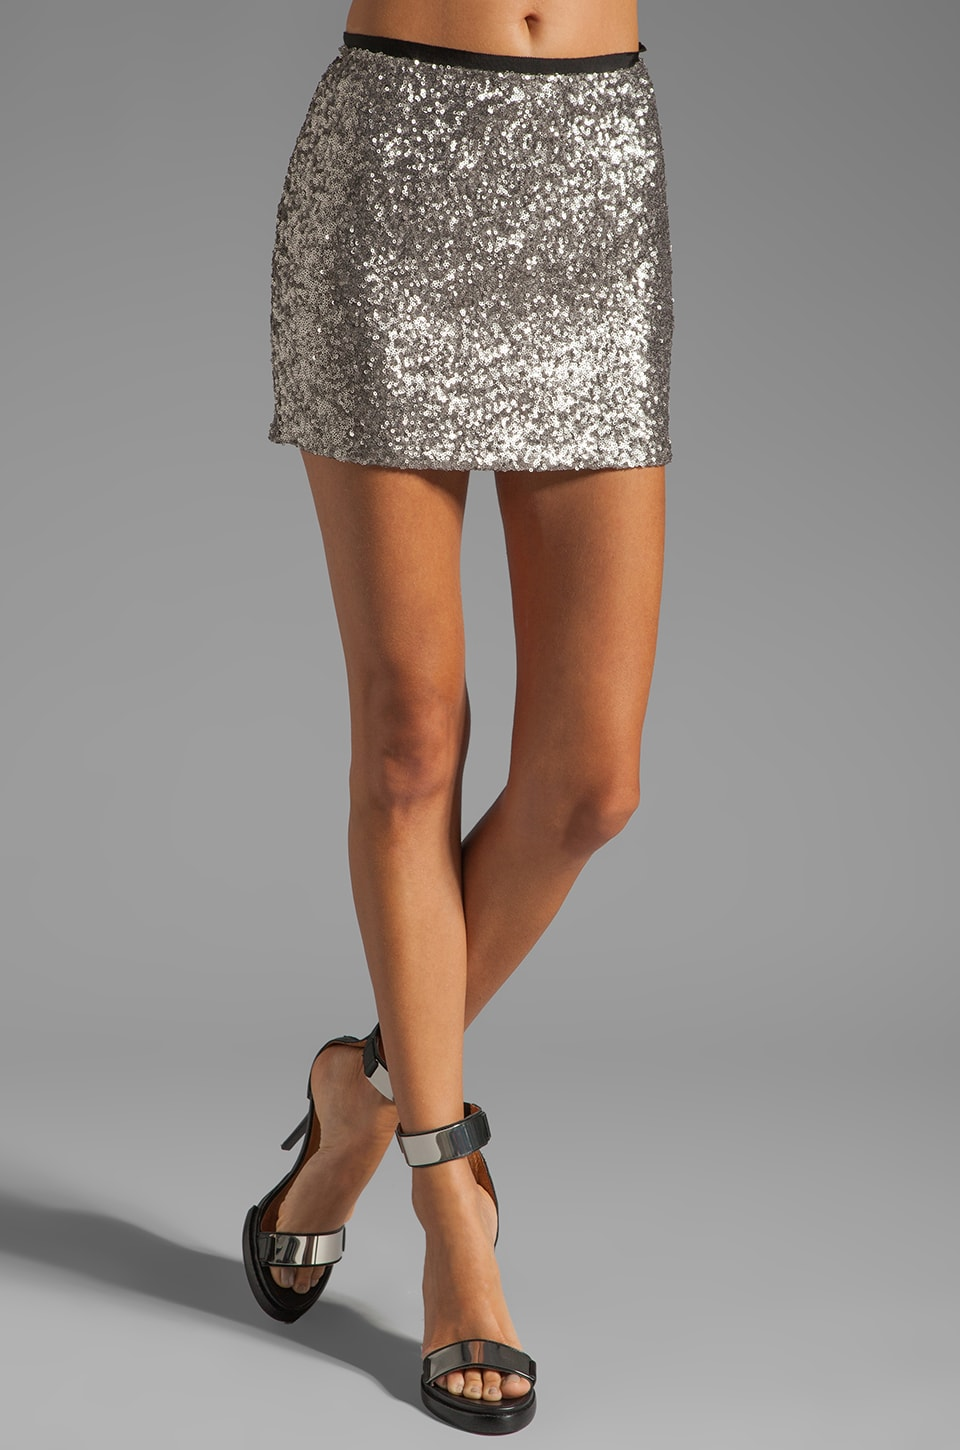 MM Couture by Miss Me Short Sequin Skirt in Silver